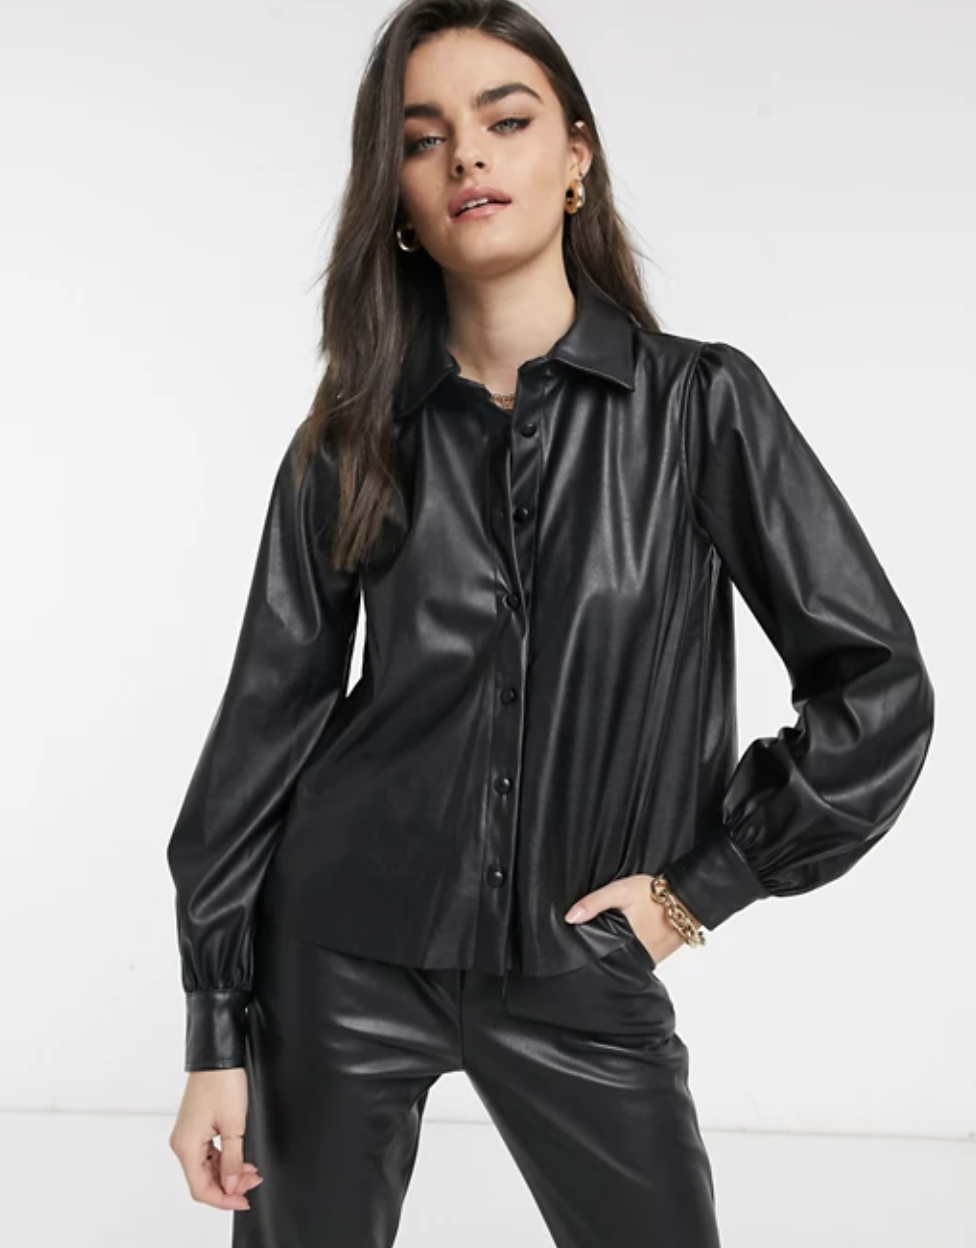 Model wearing faux leather button-down shirt